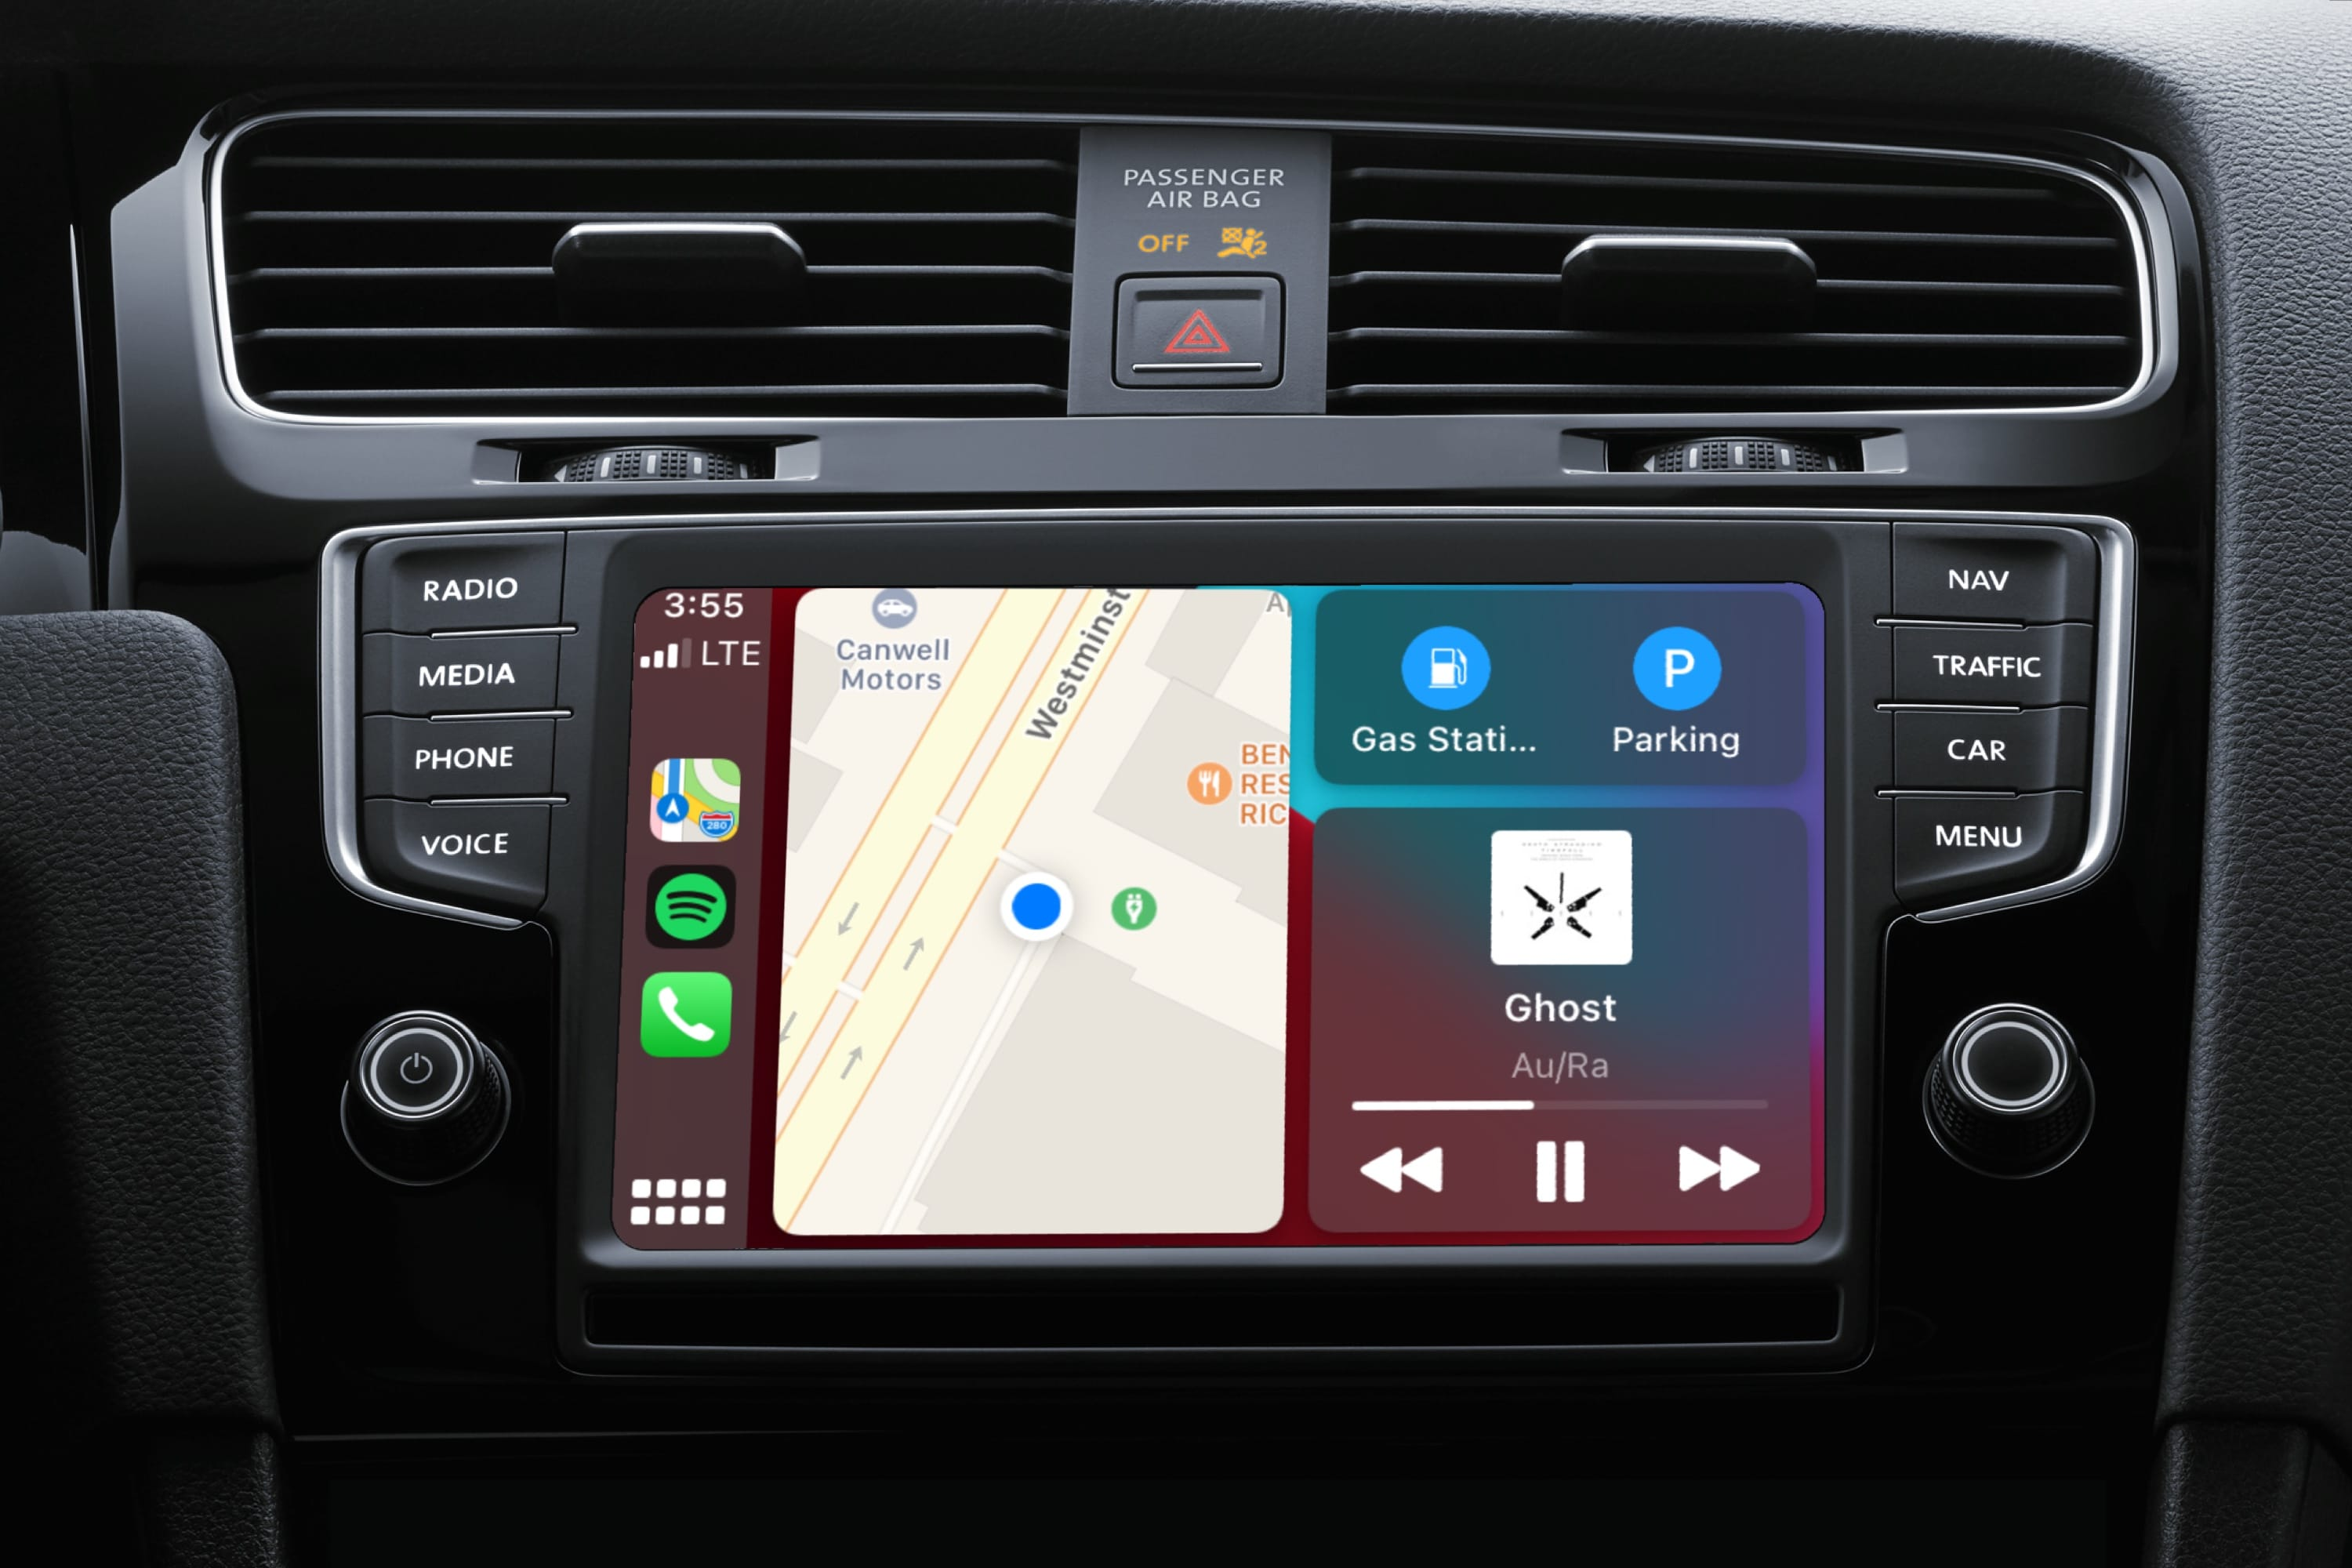 rumors-heat-up-about-carplay-expansion-for-2021-portless-iphones-20201119-1